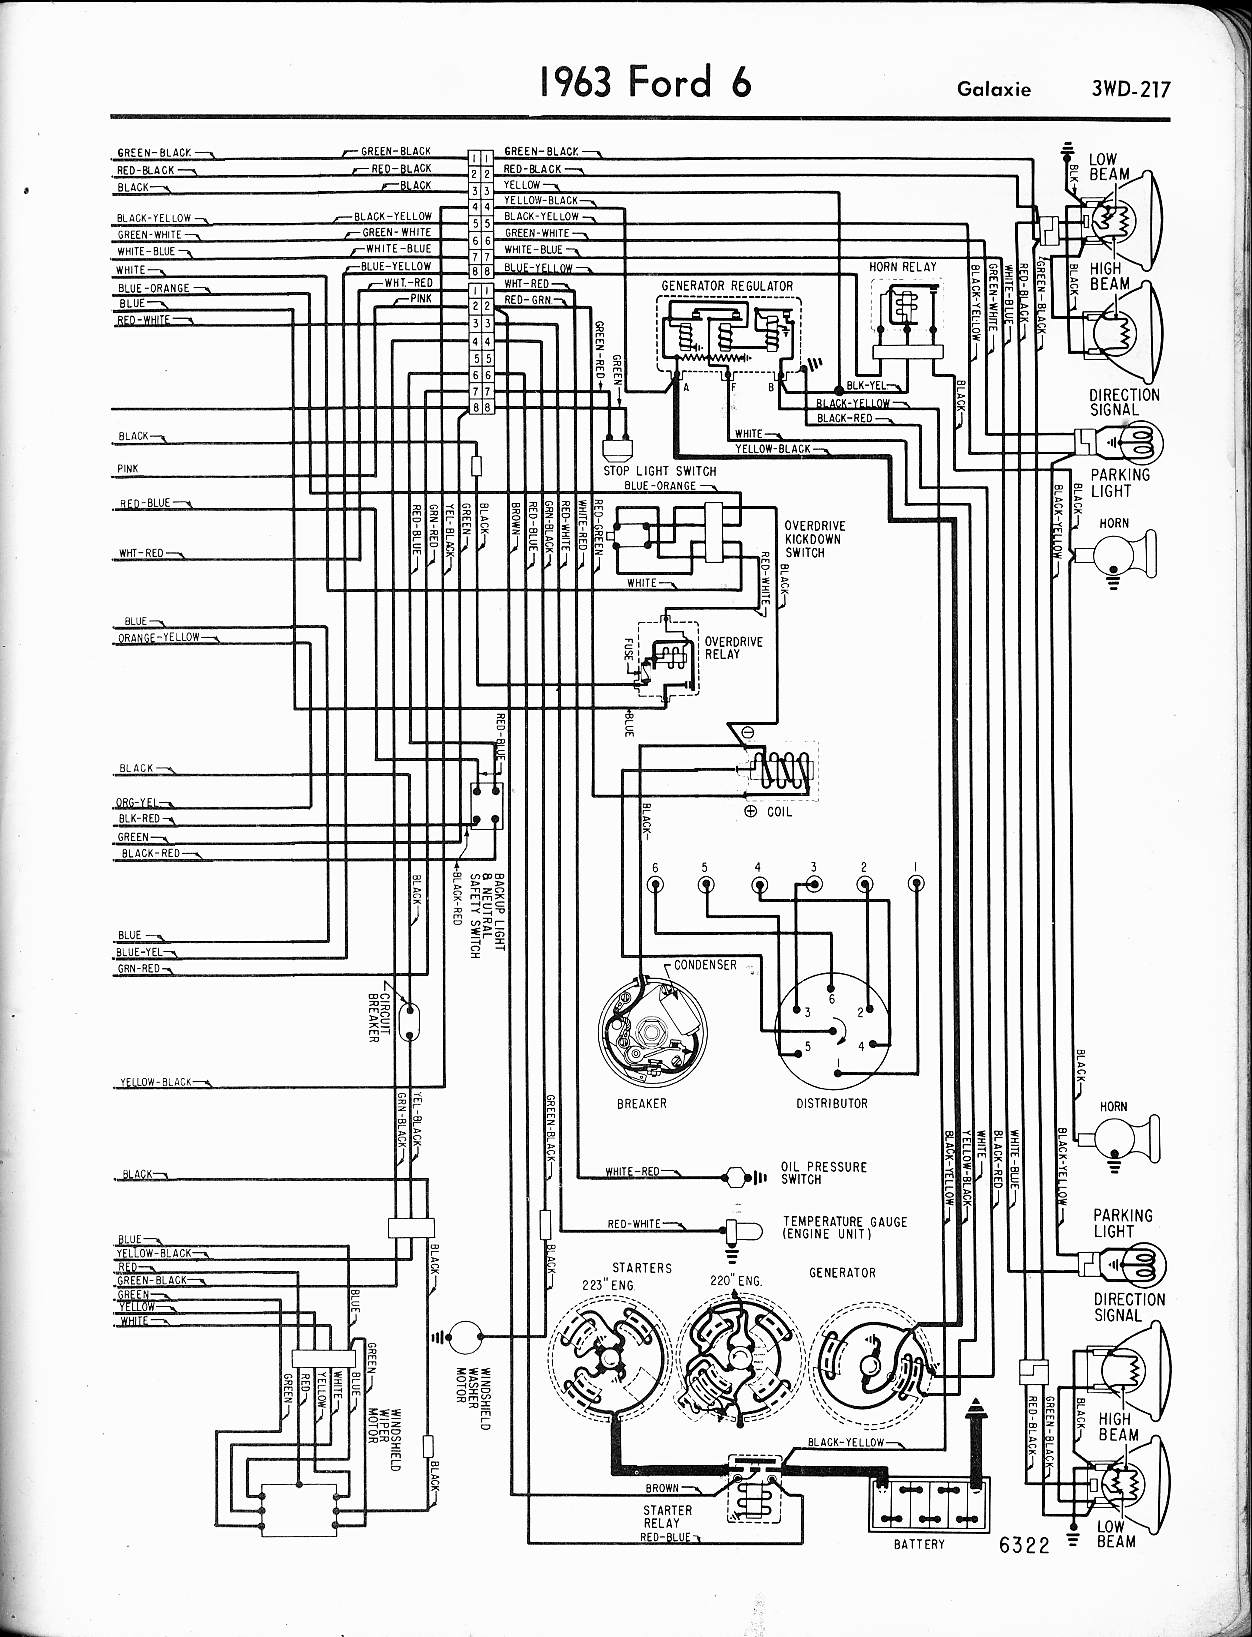 1955 ford fairlane wiring diagram vt calais radio 1956 mercury engine get free image about